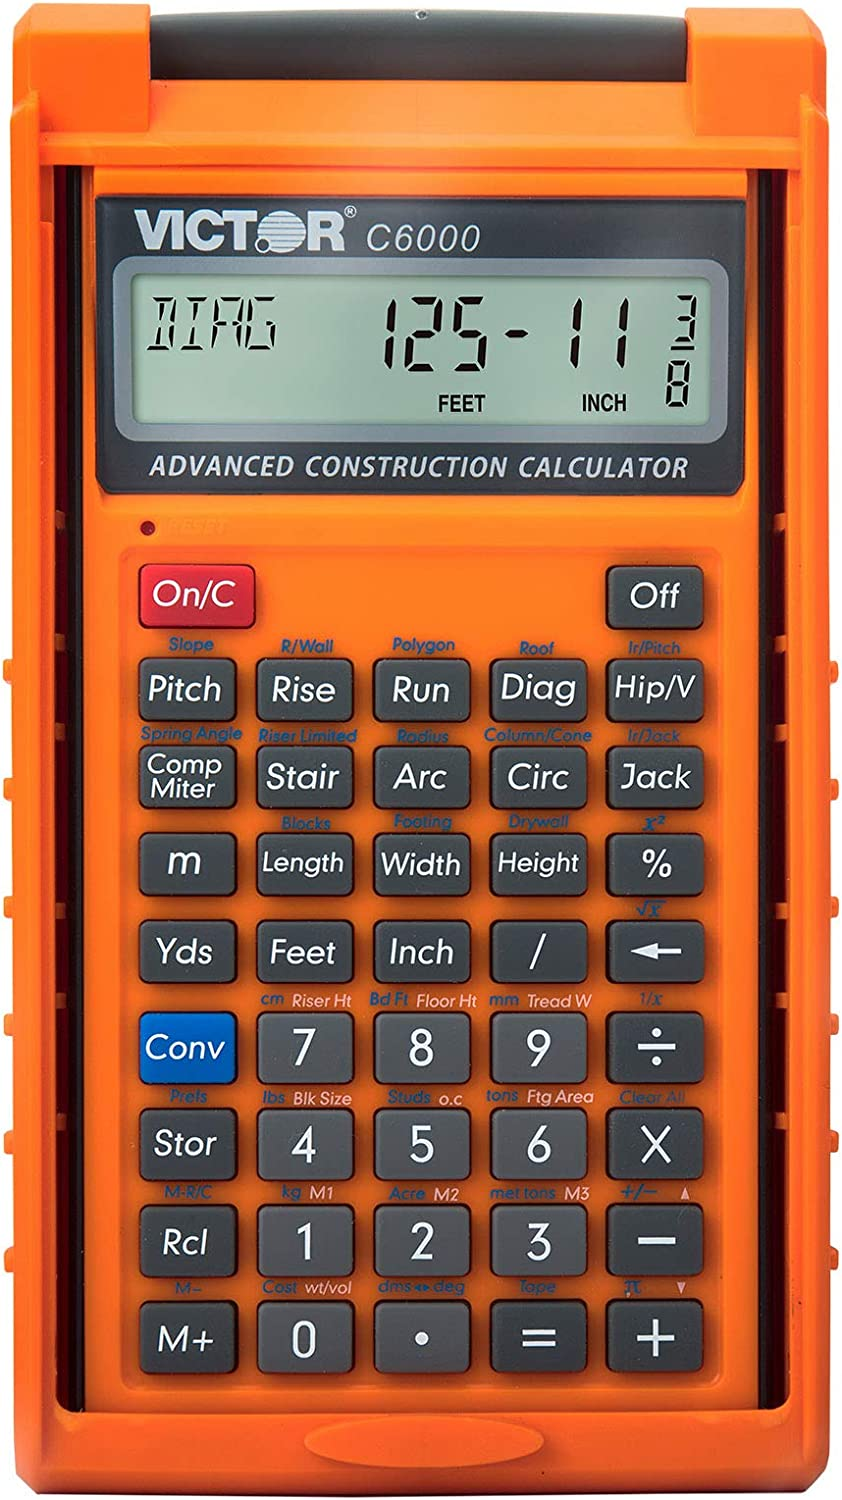 Victor C6000 Advanced Construction Max 61% OFF Direct stock discount Ca with Calculator Protective